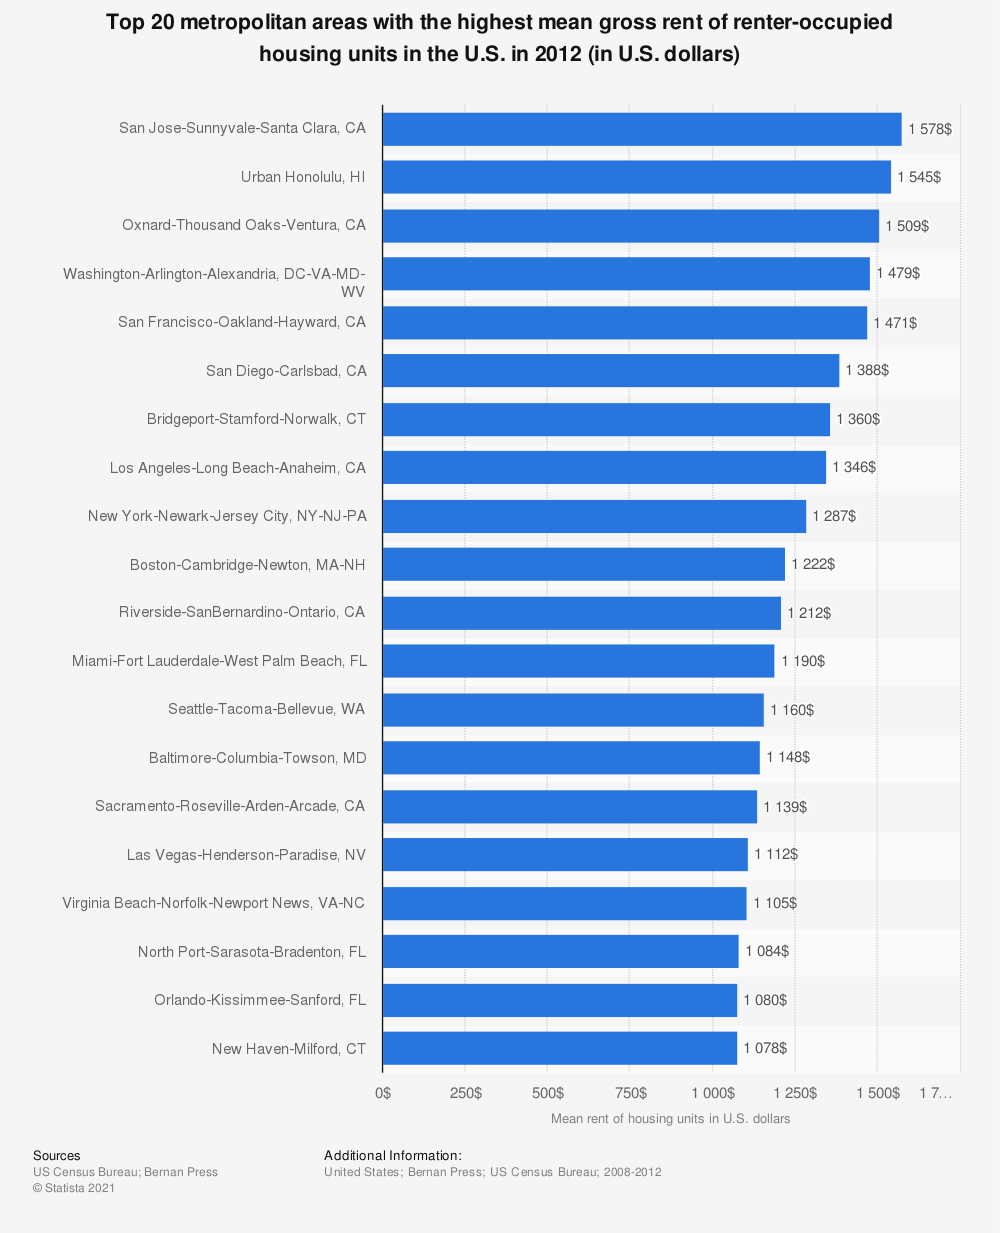 Statistic: Top 20 metropolitan areas with the highest mean gross rent of renter-occupied housing units in the U.S. in 2012 (in U.S. dollars) | Statista